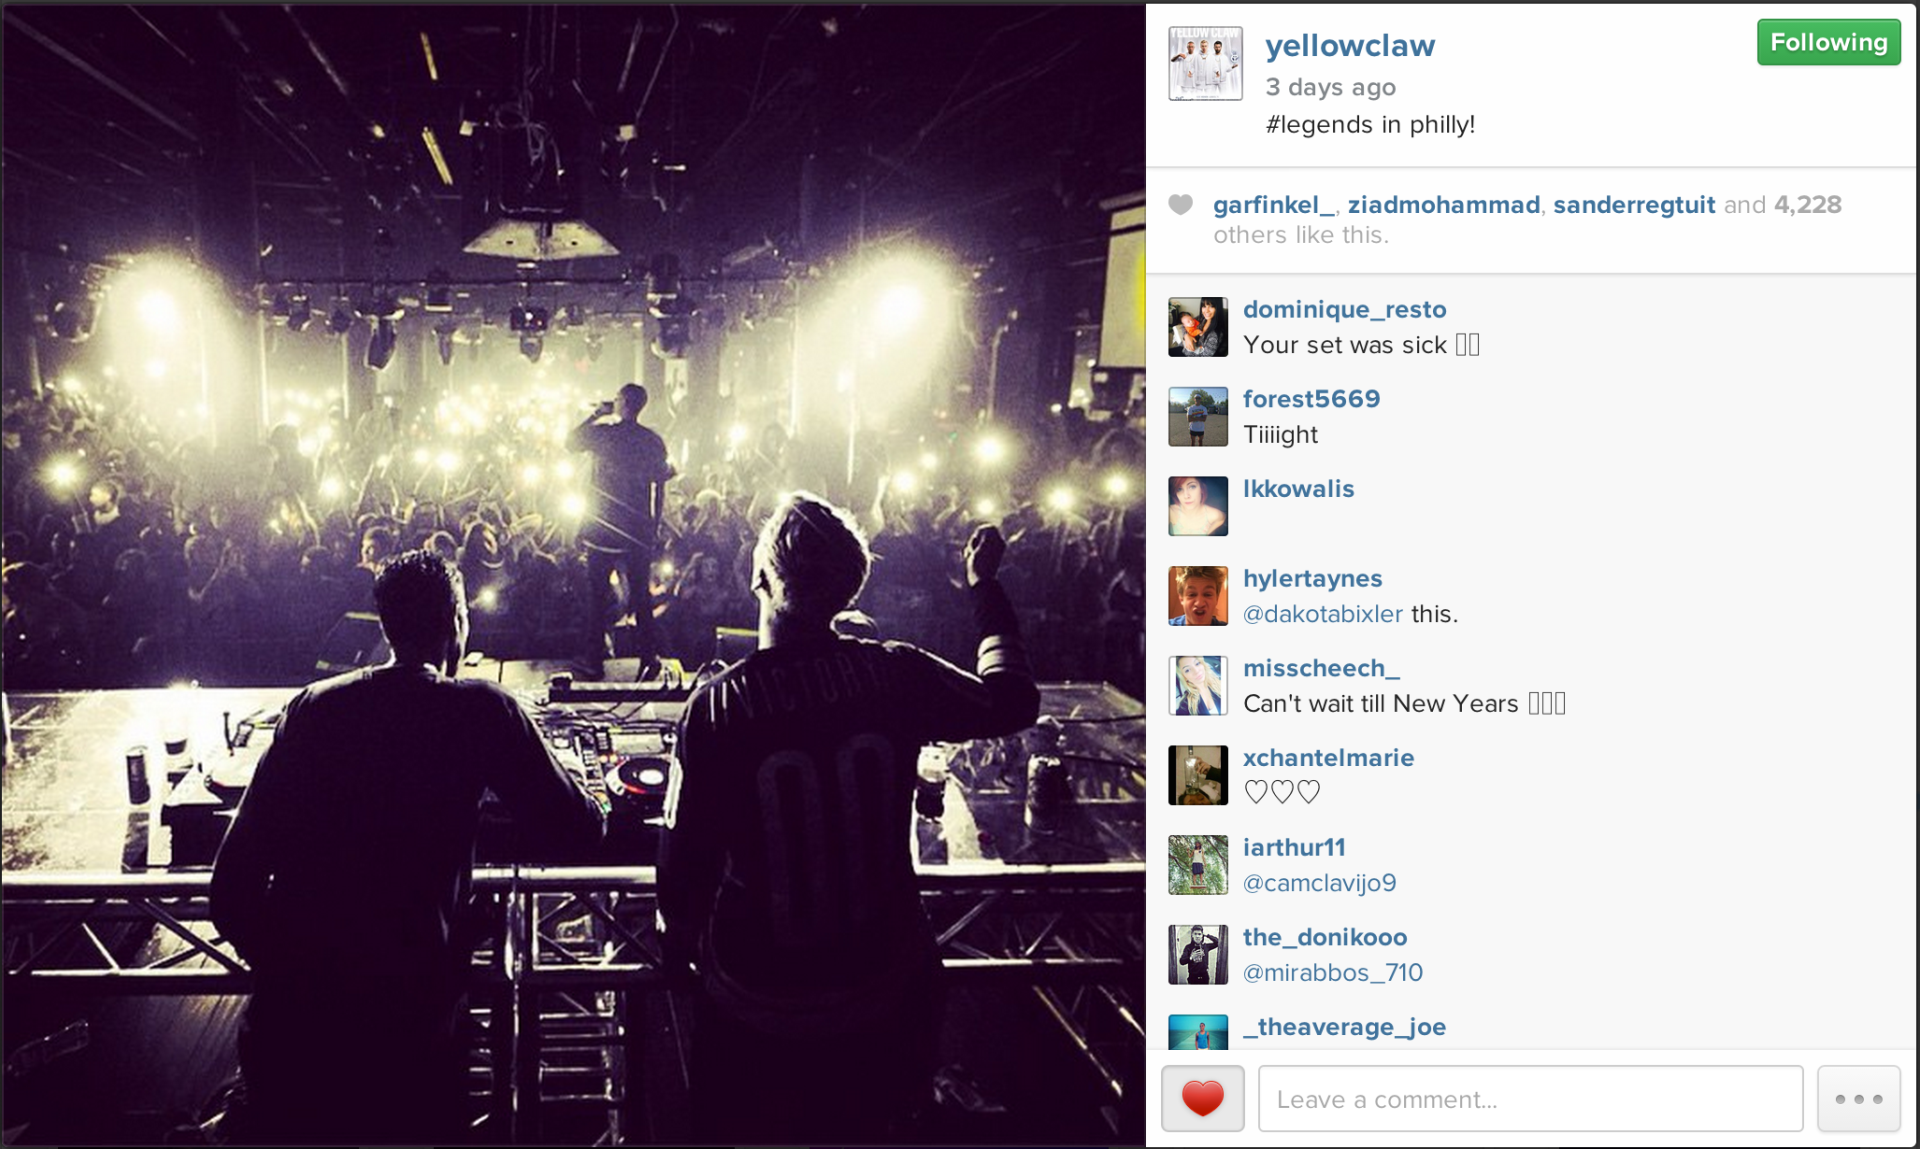 Yellowclaw sharing my photo of them on their Instagram.